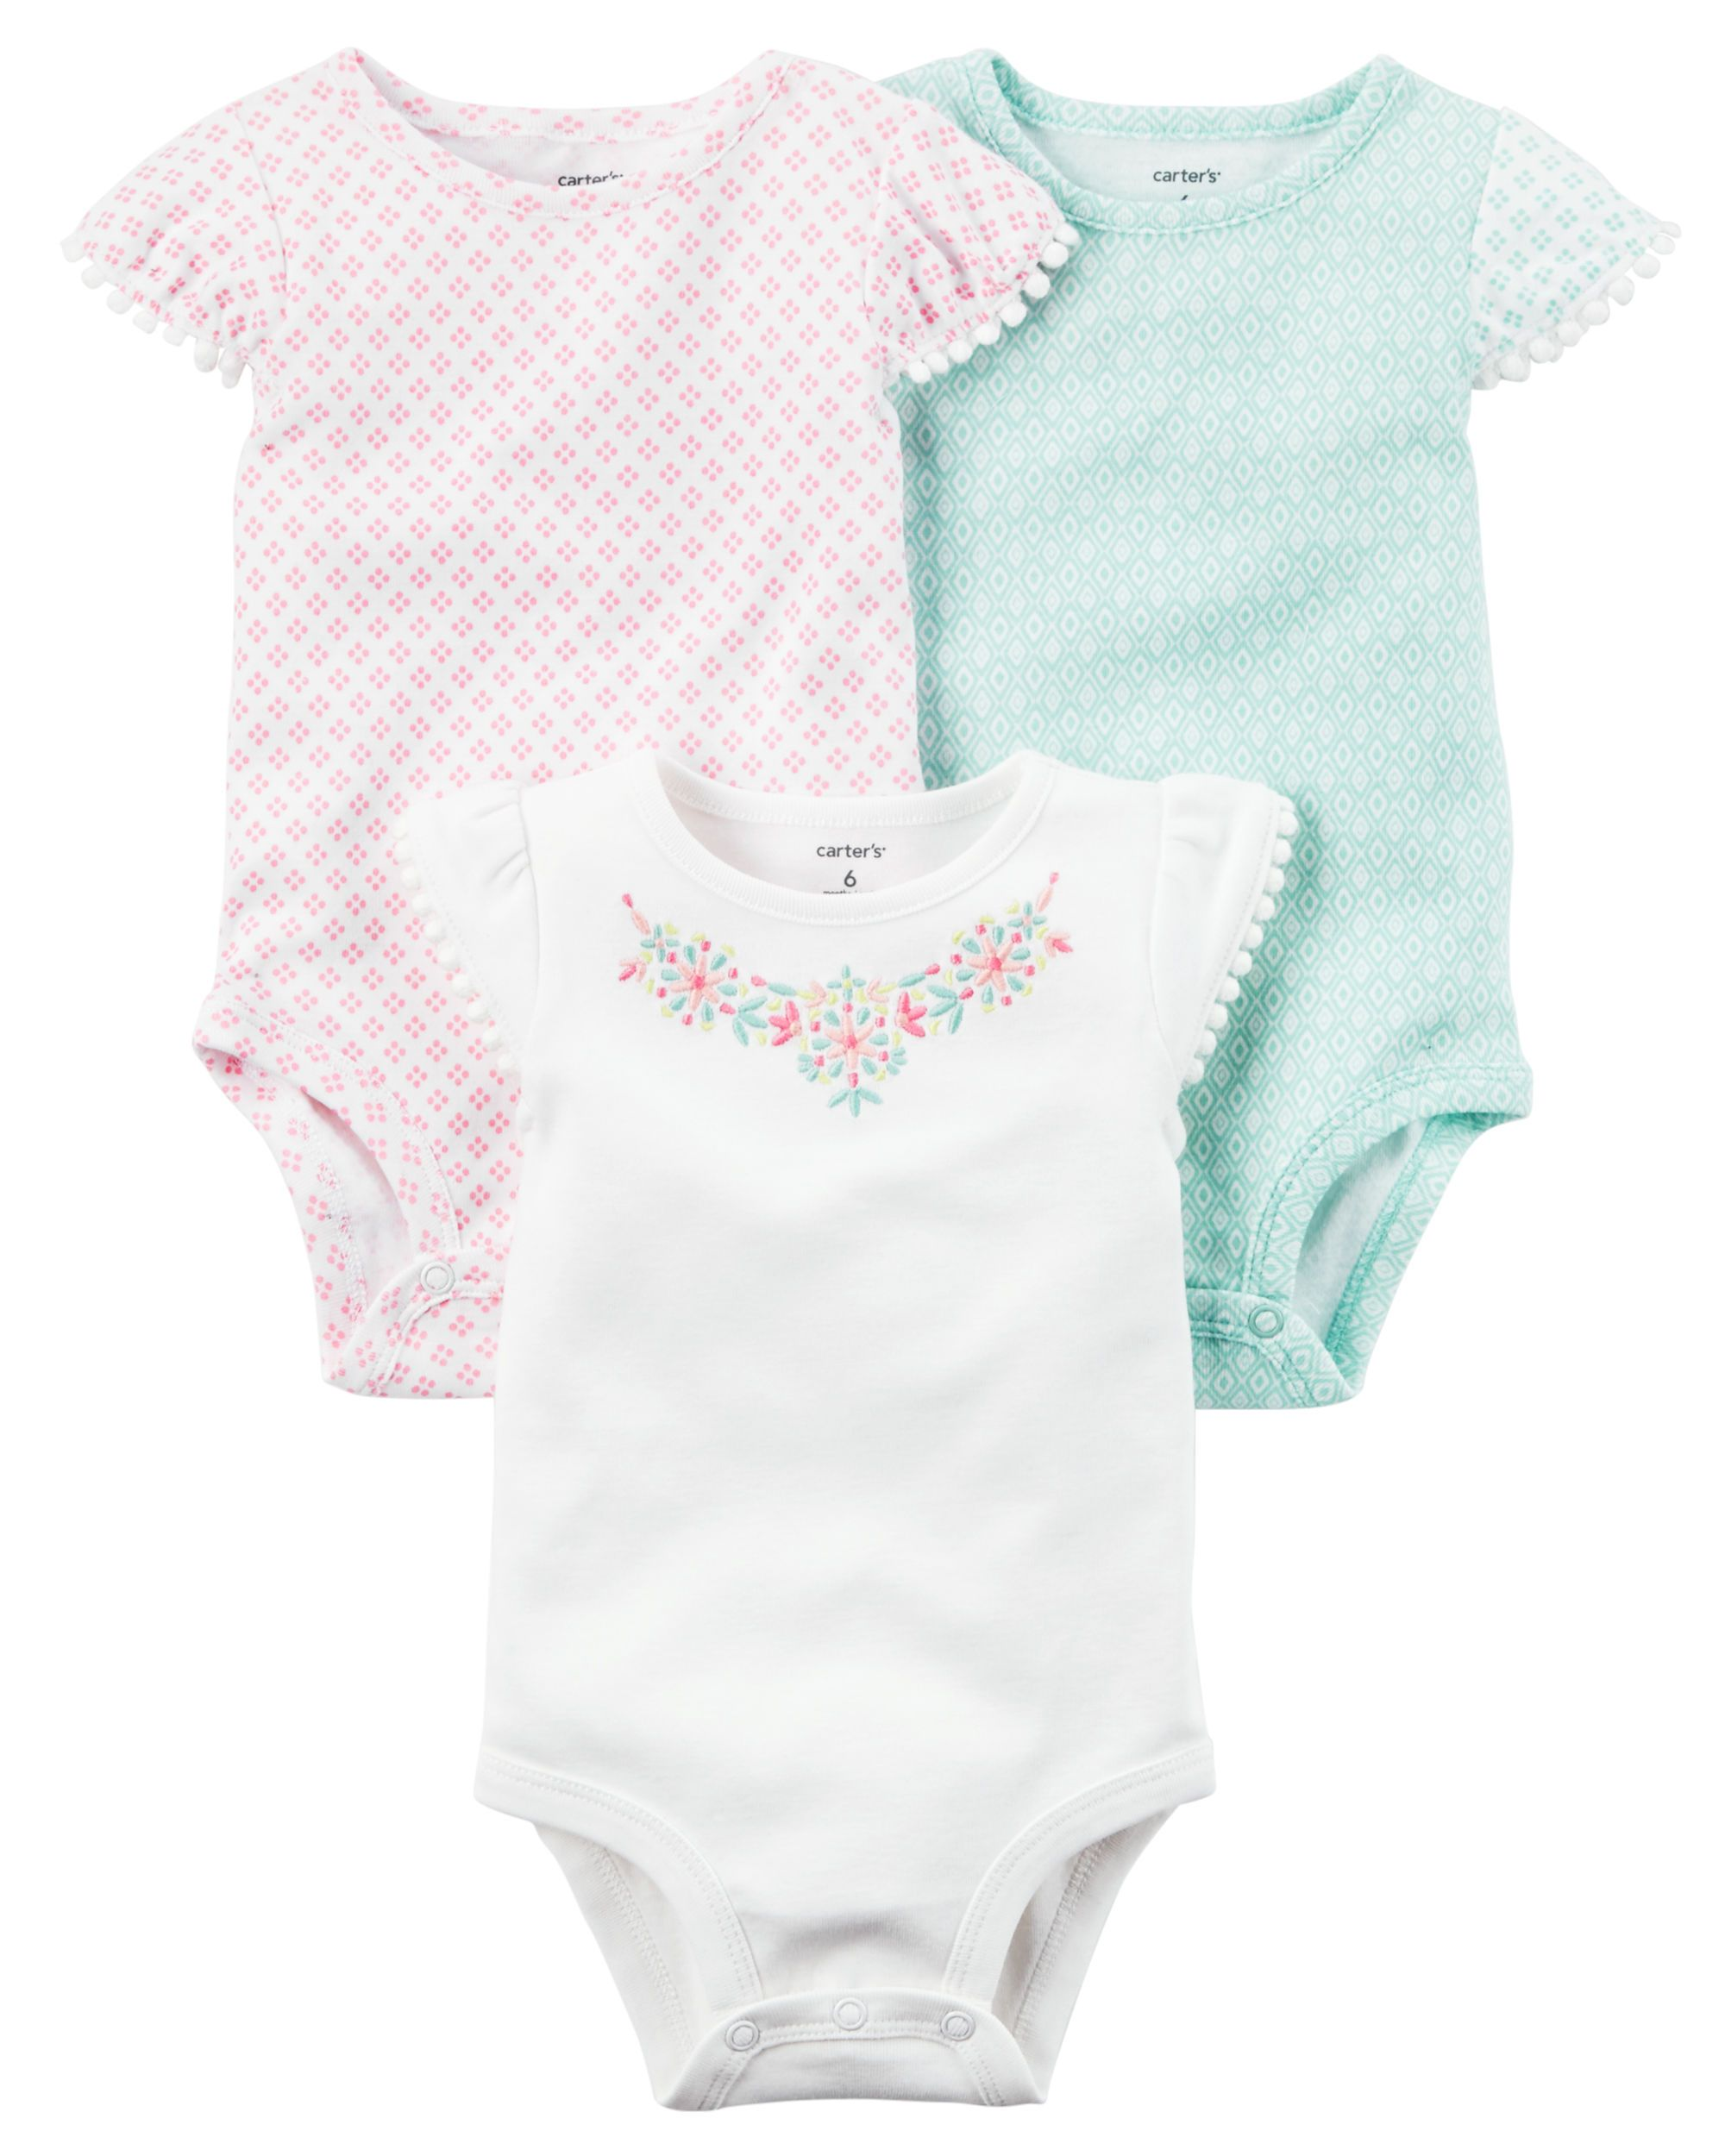 Baby Girl 3-Pack Flutter-Sleeve Original Bodysuits from Carters.com. Shop clothing & accessories from a trusted name in kids, toddlers, and baby clothes.